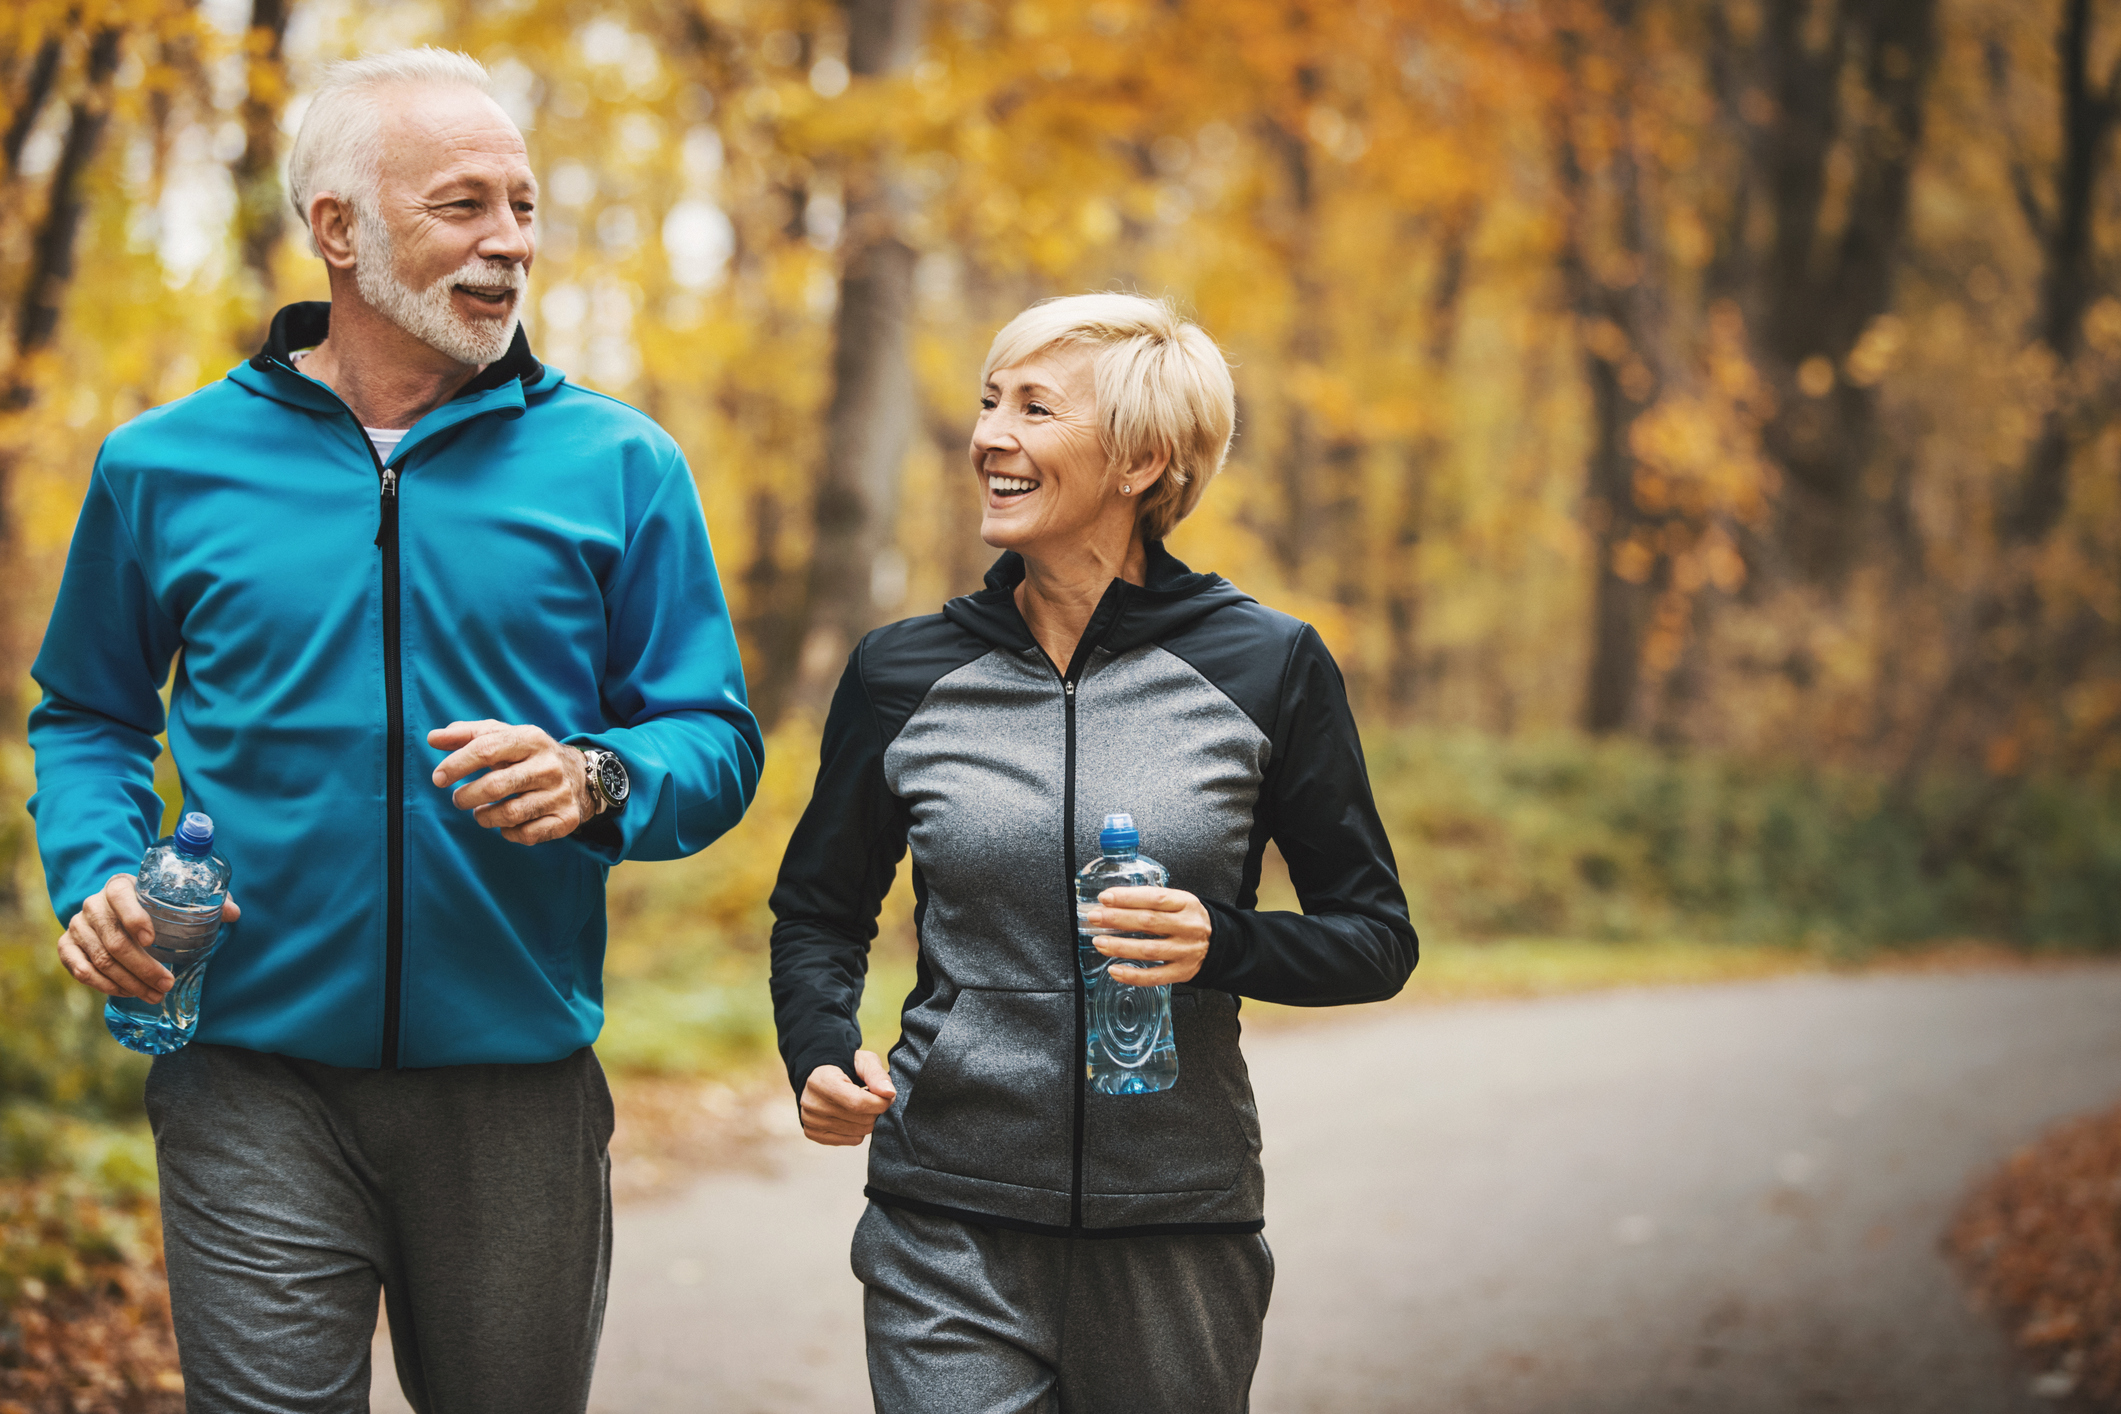 Senior-couple-jogging-in-a-forest.-905501696_2125x1416.jpeg